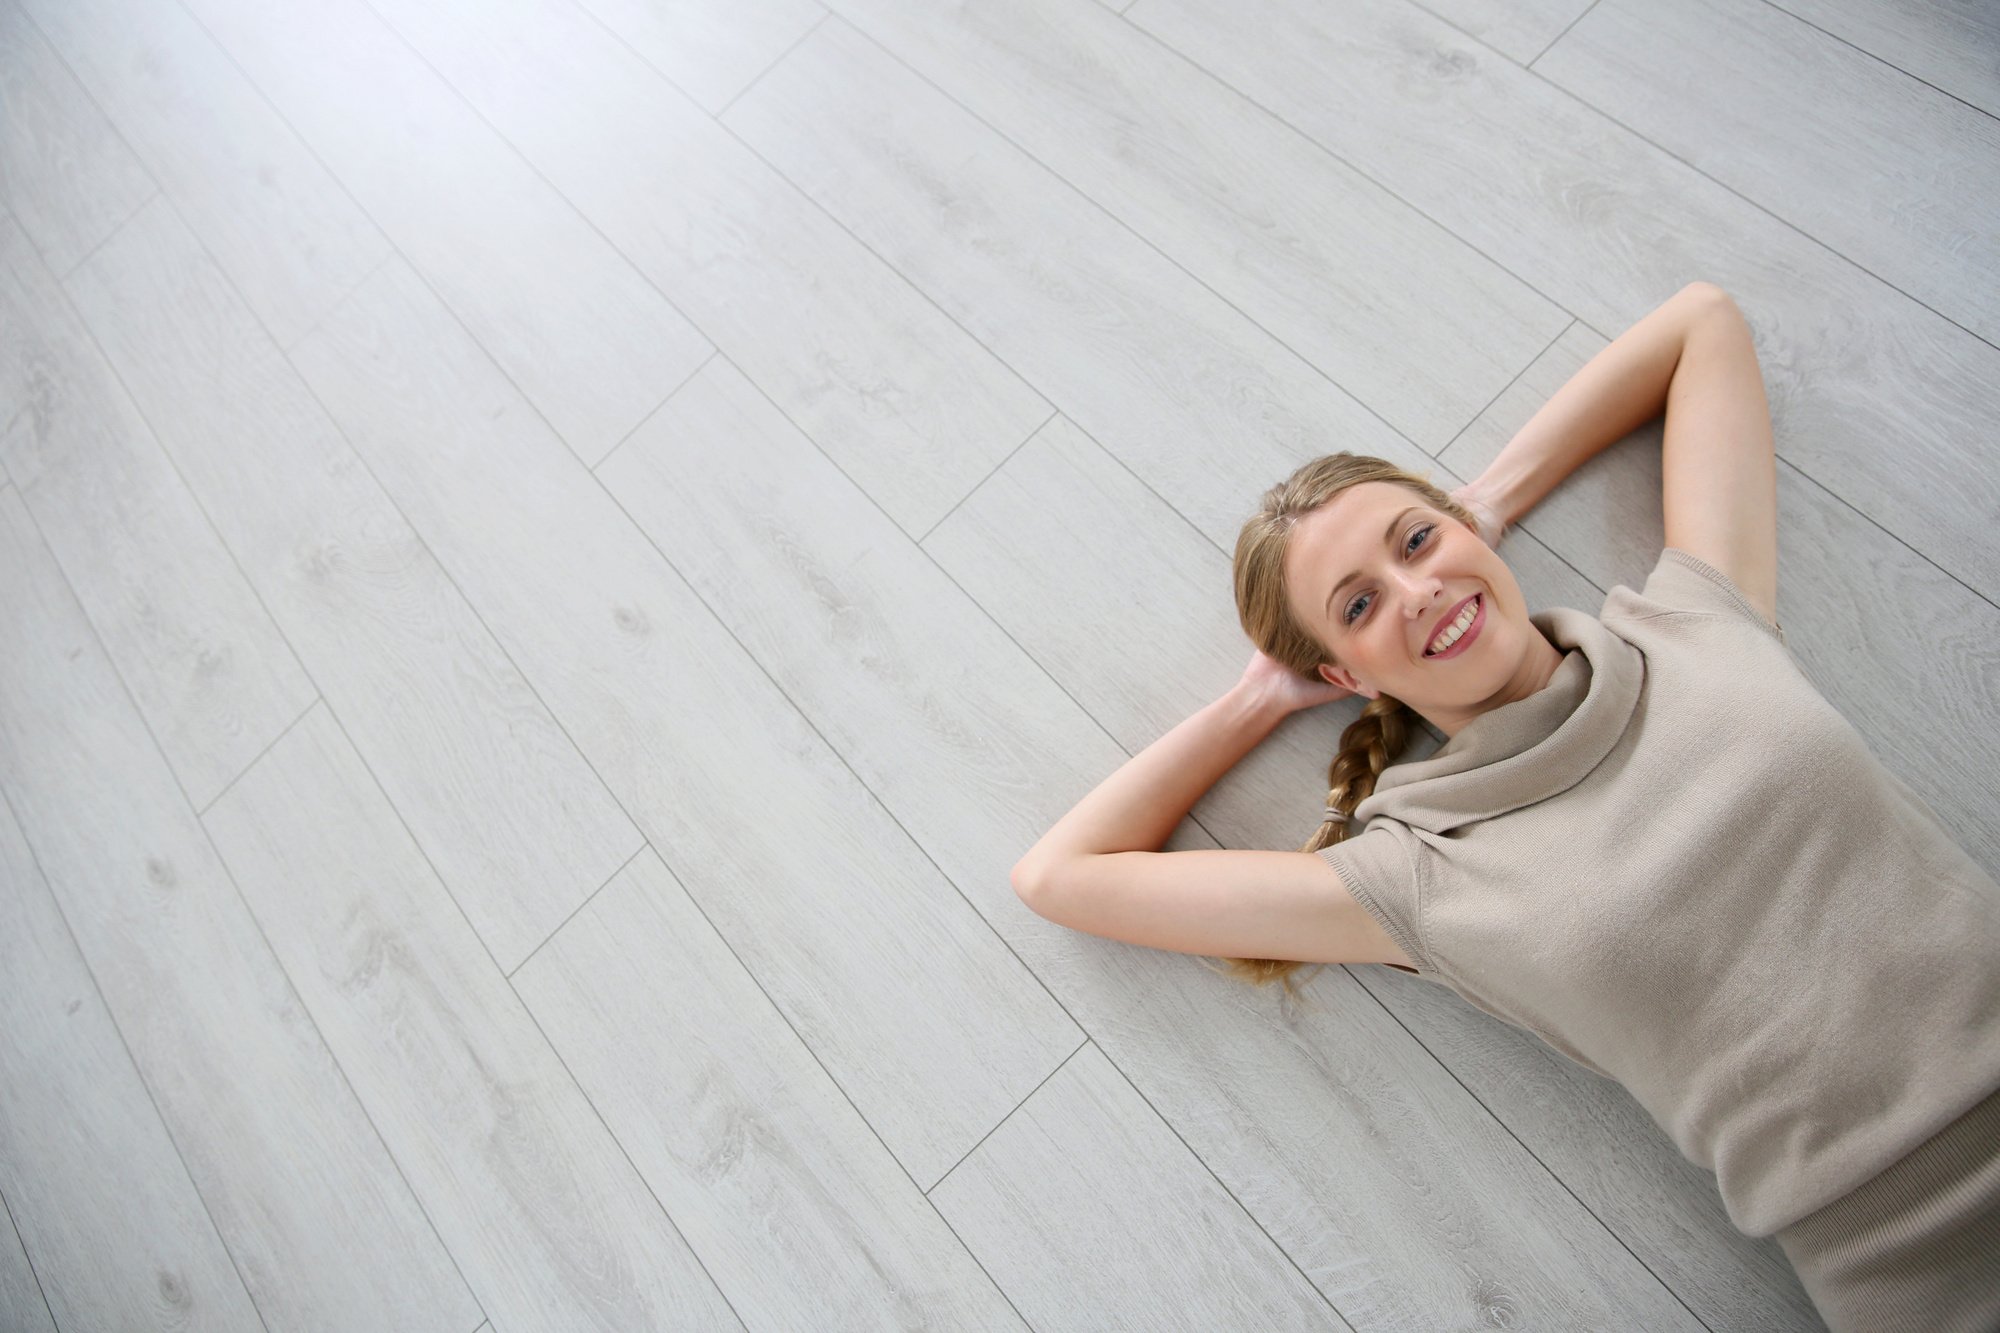 A Comprehensive Guide to Flooring Options For Your Home